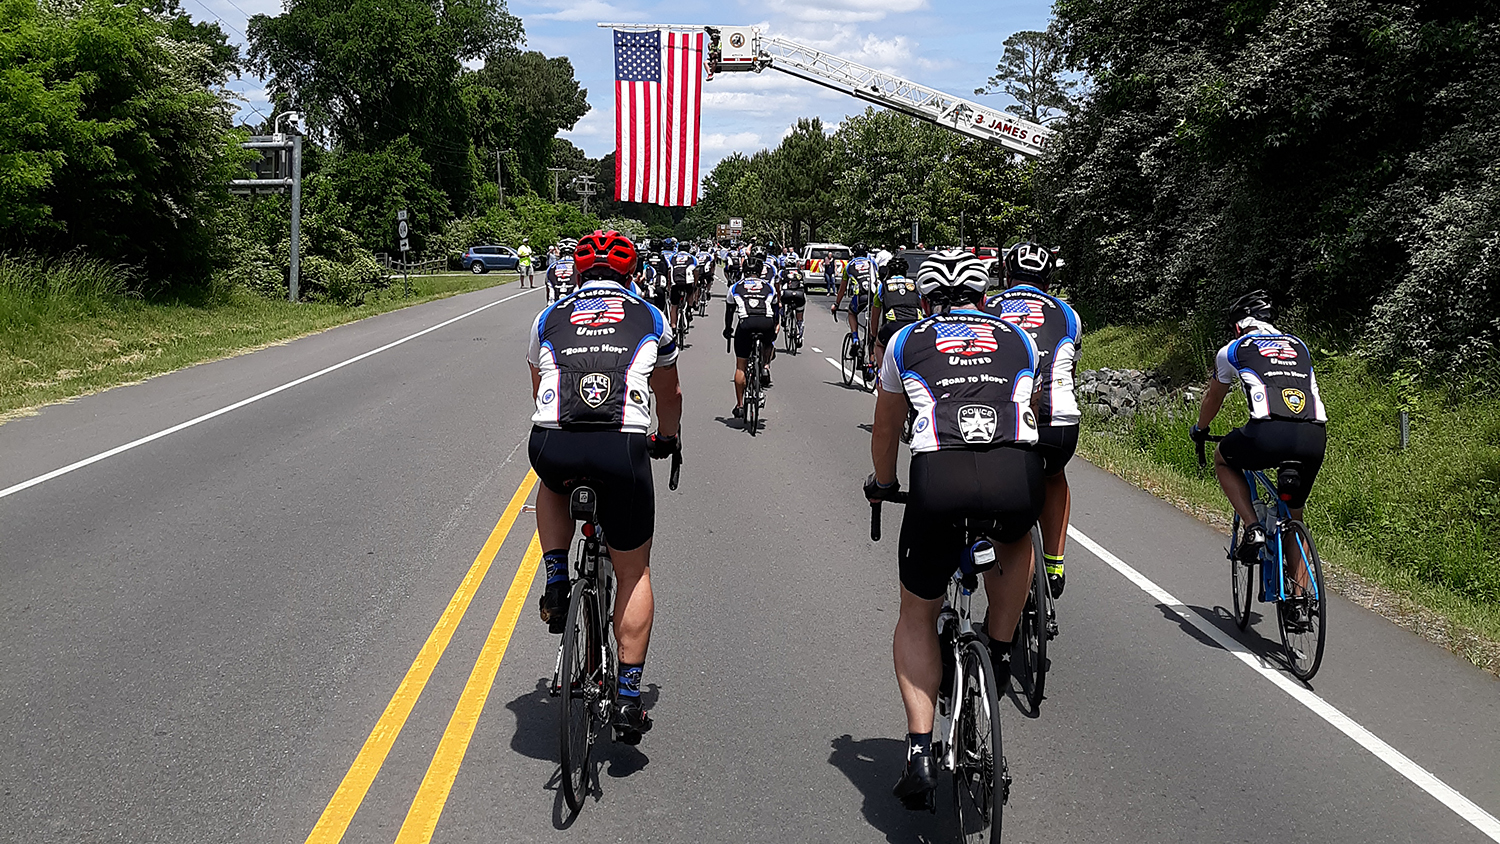 Cyclists from Raleigh approach Jamestown, Virginia.